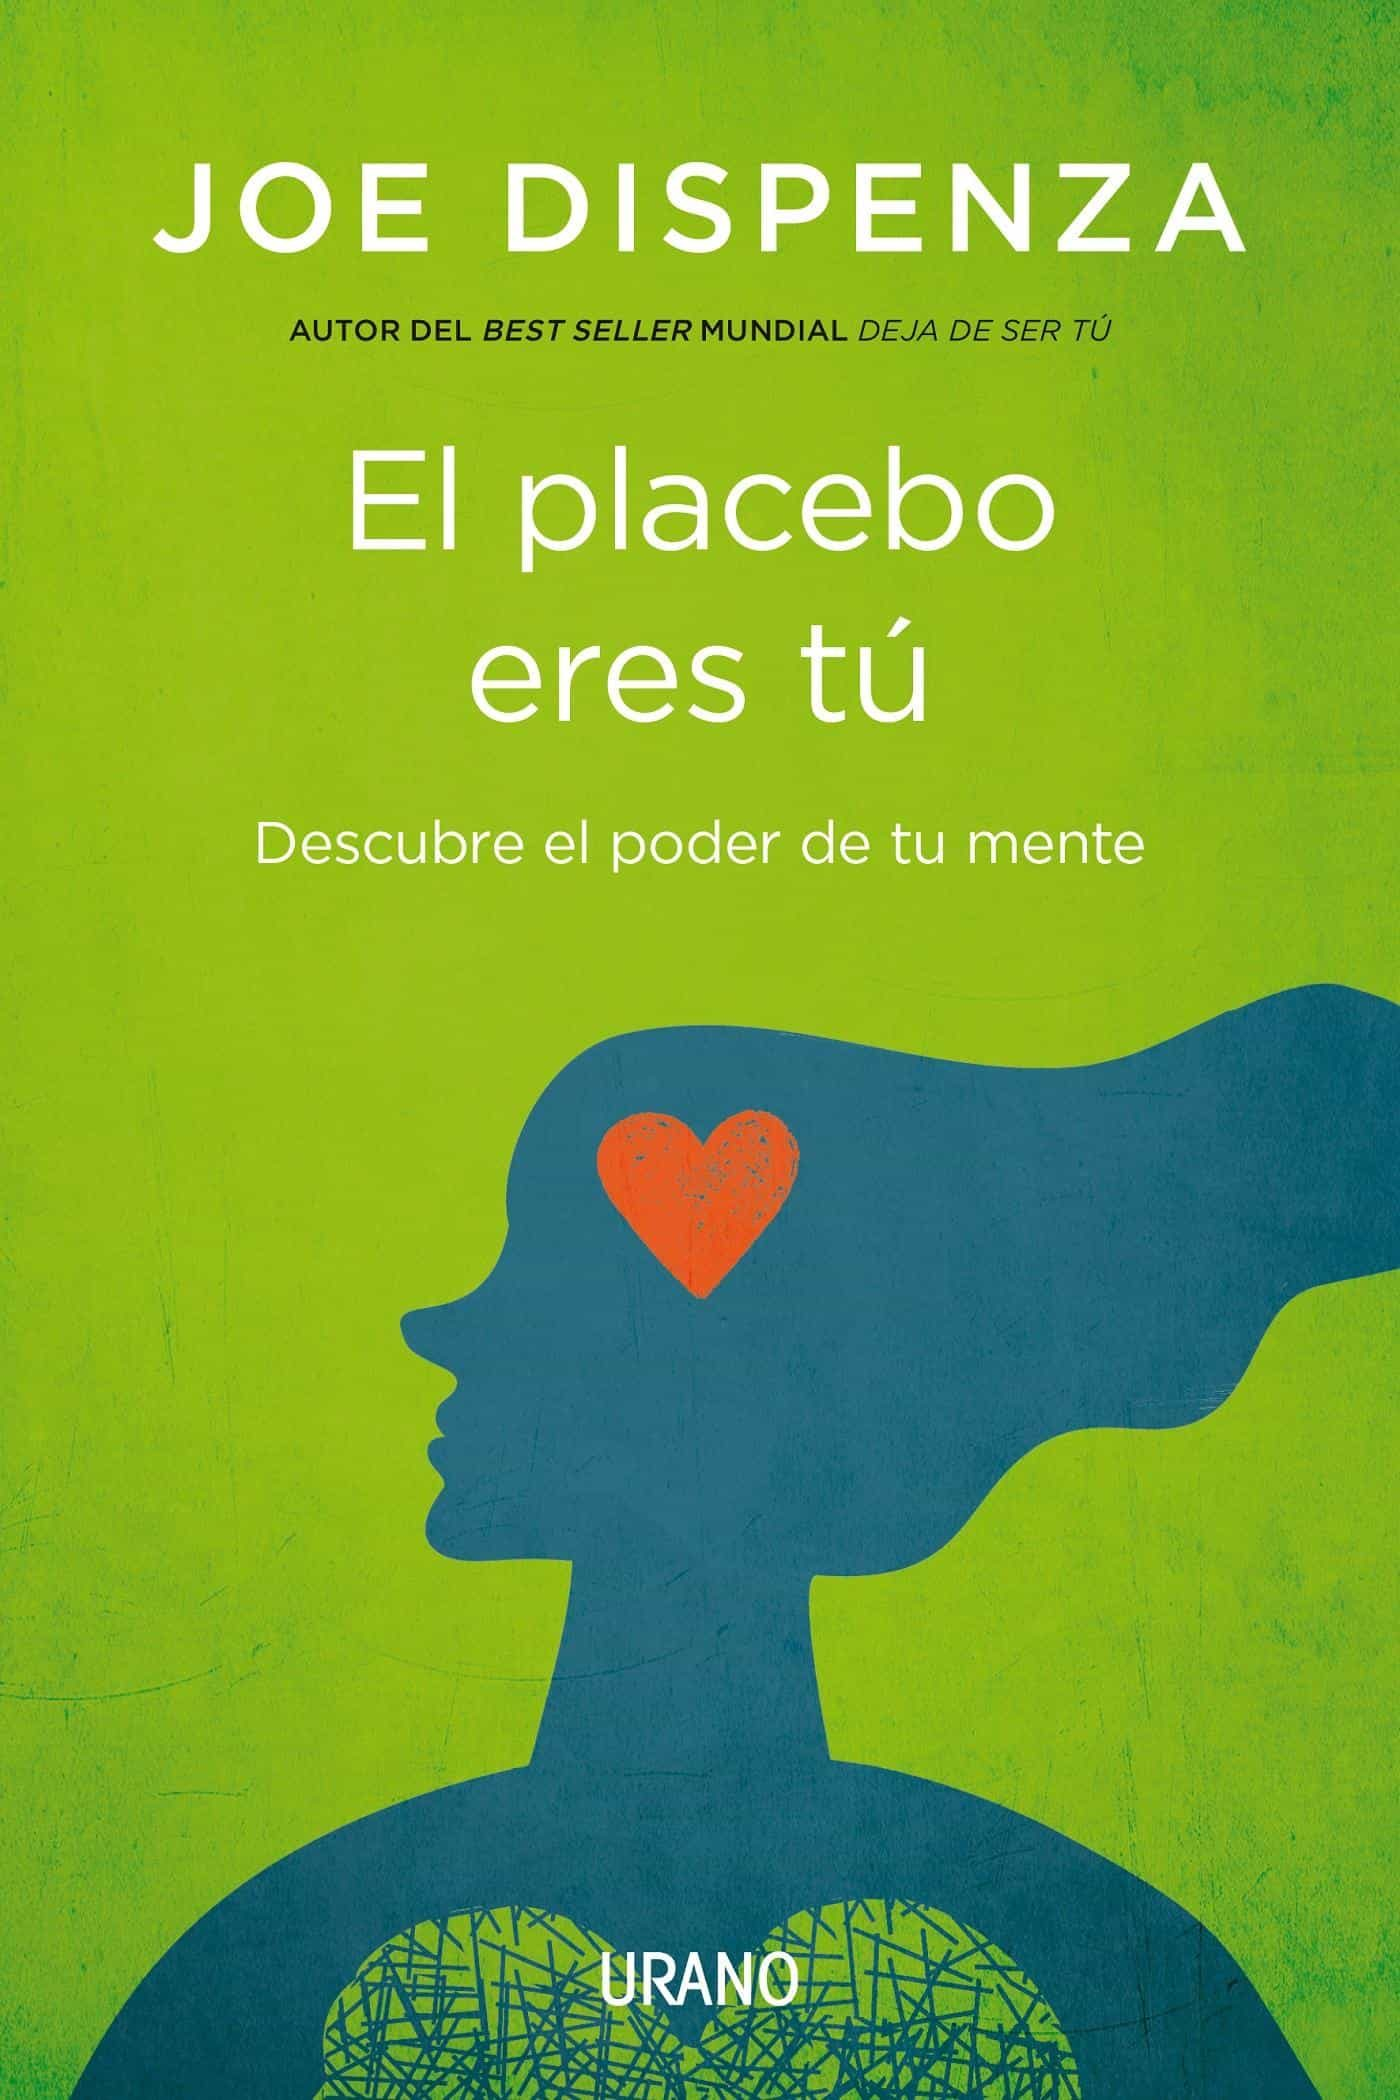 libro el placebo eres tu joe dispenza pdf